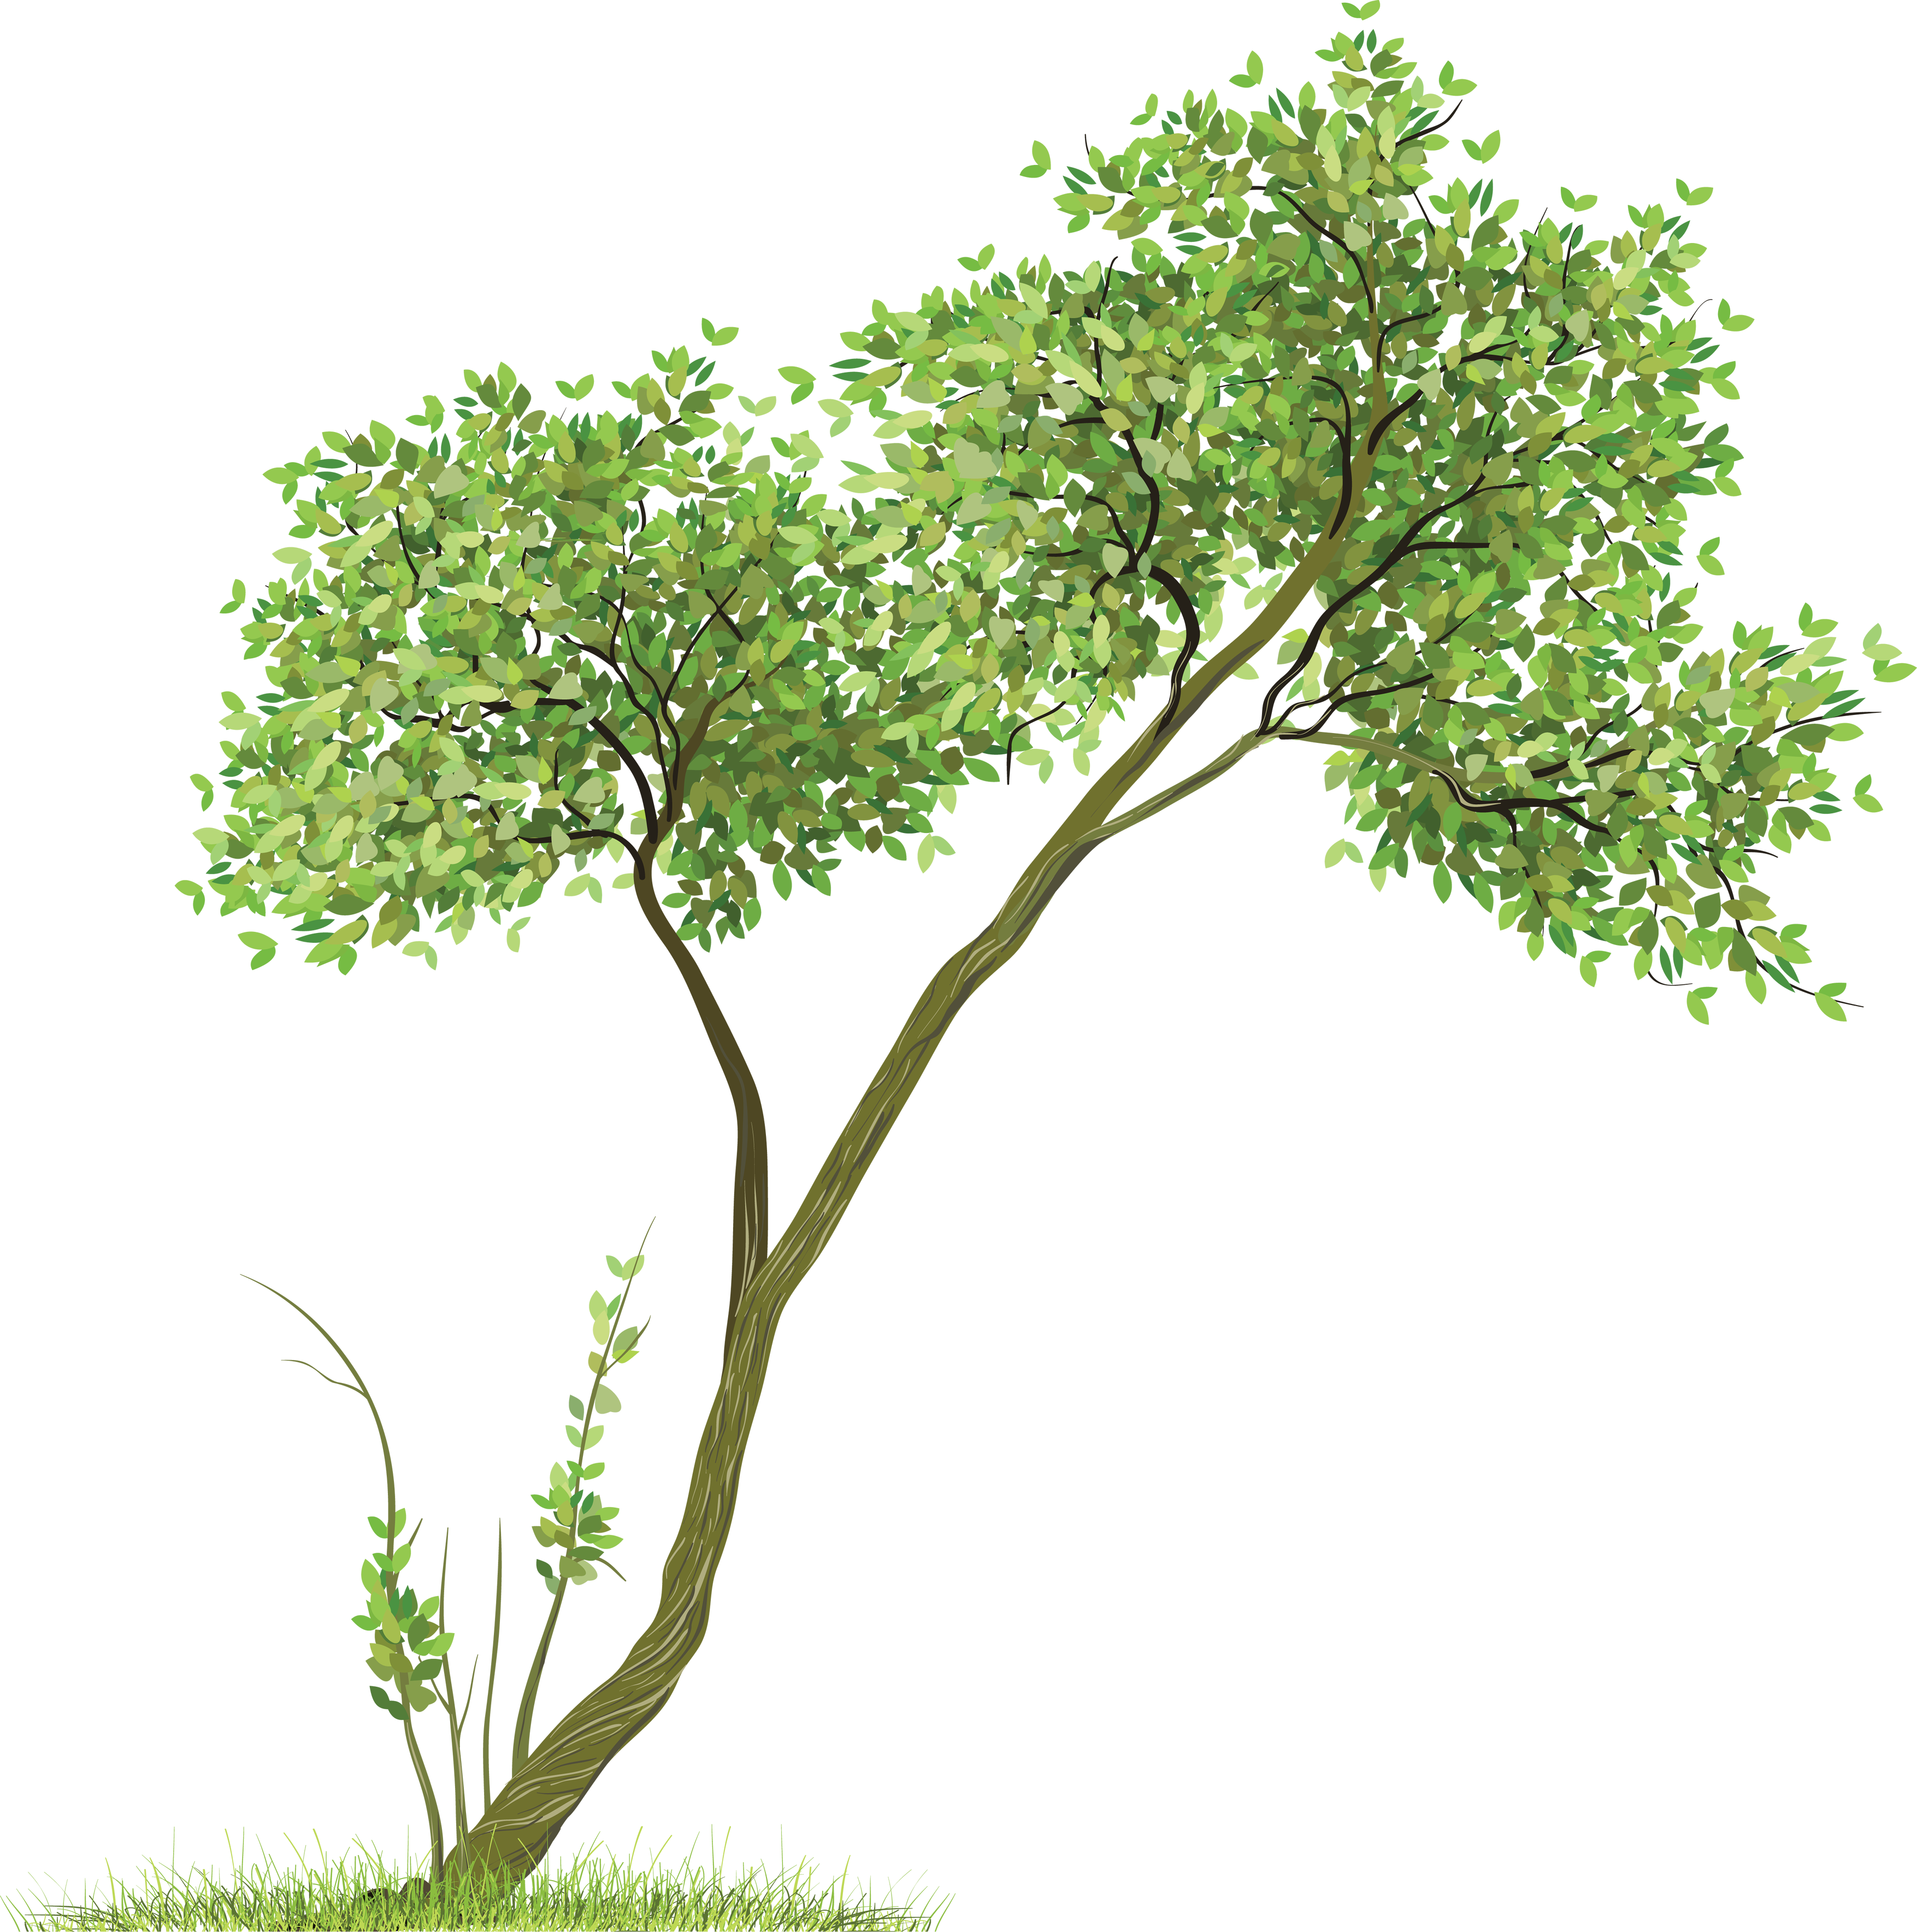 Download tree transparent image. Free png images for photoshop